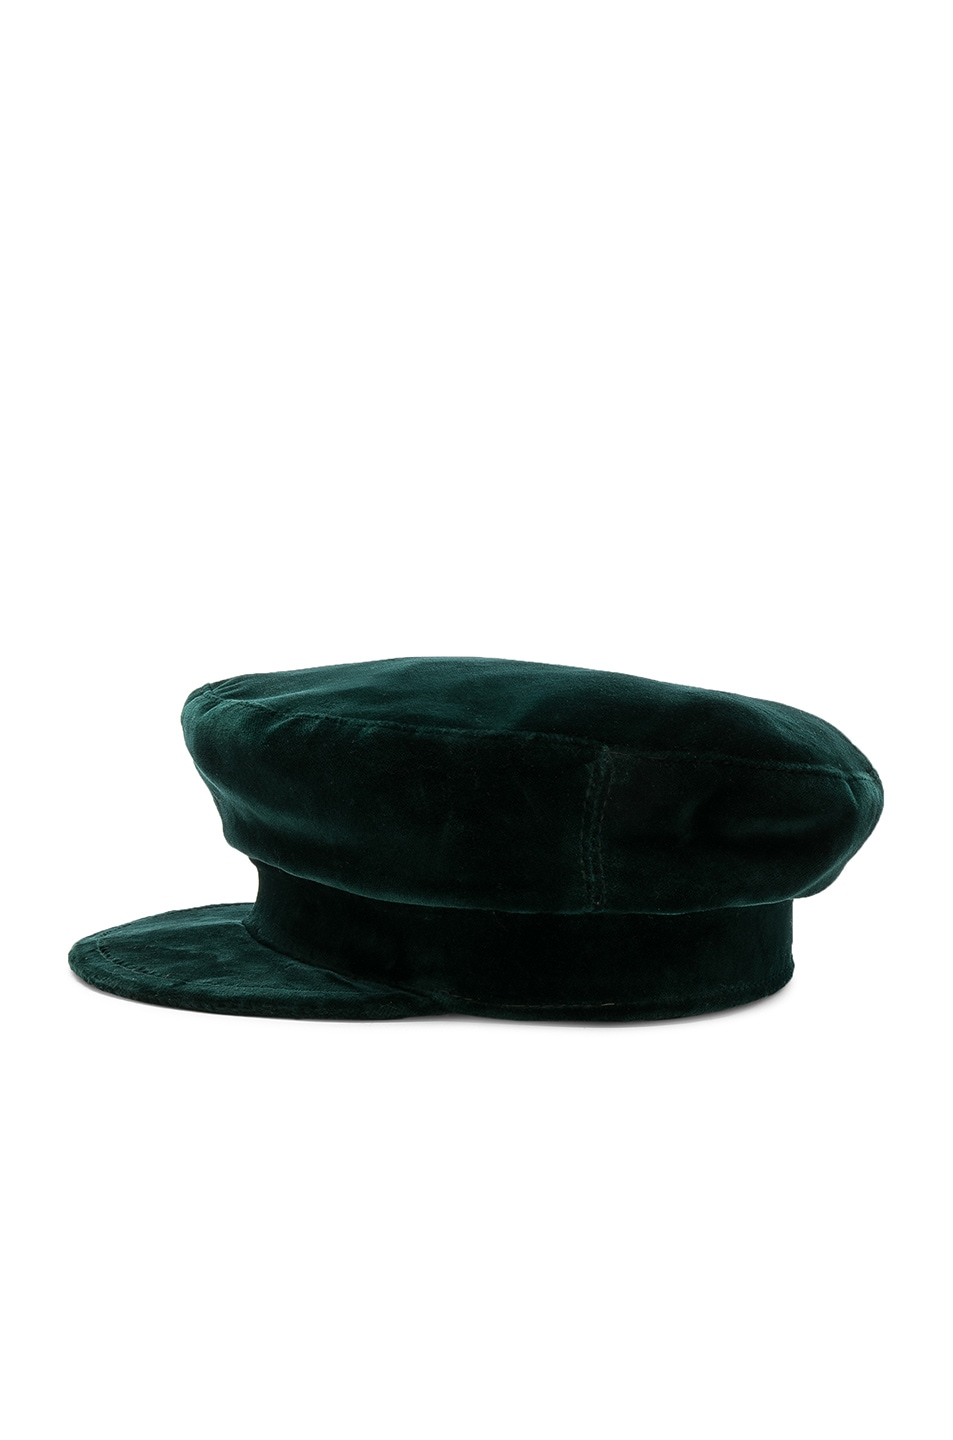 Image 3 of Janessa Leone Mattie Fisherman Velvet Cap in Emerald